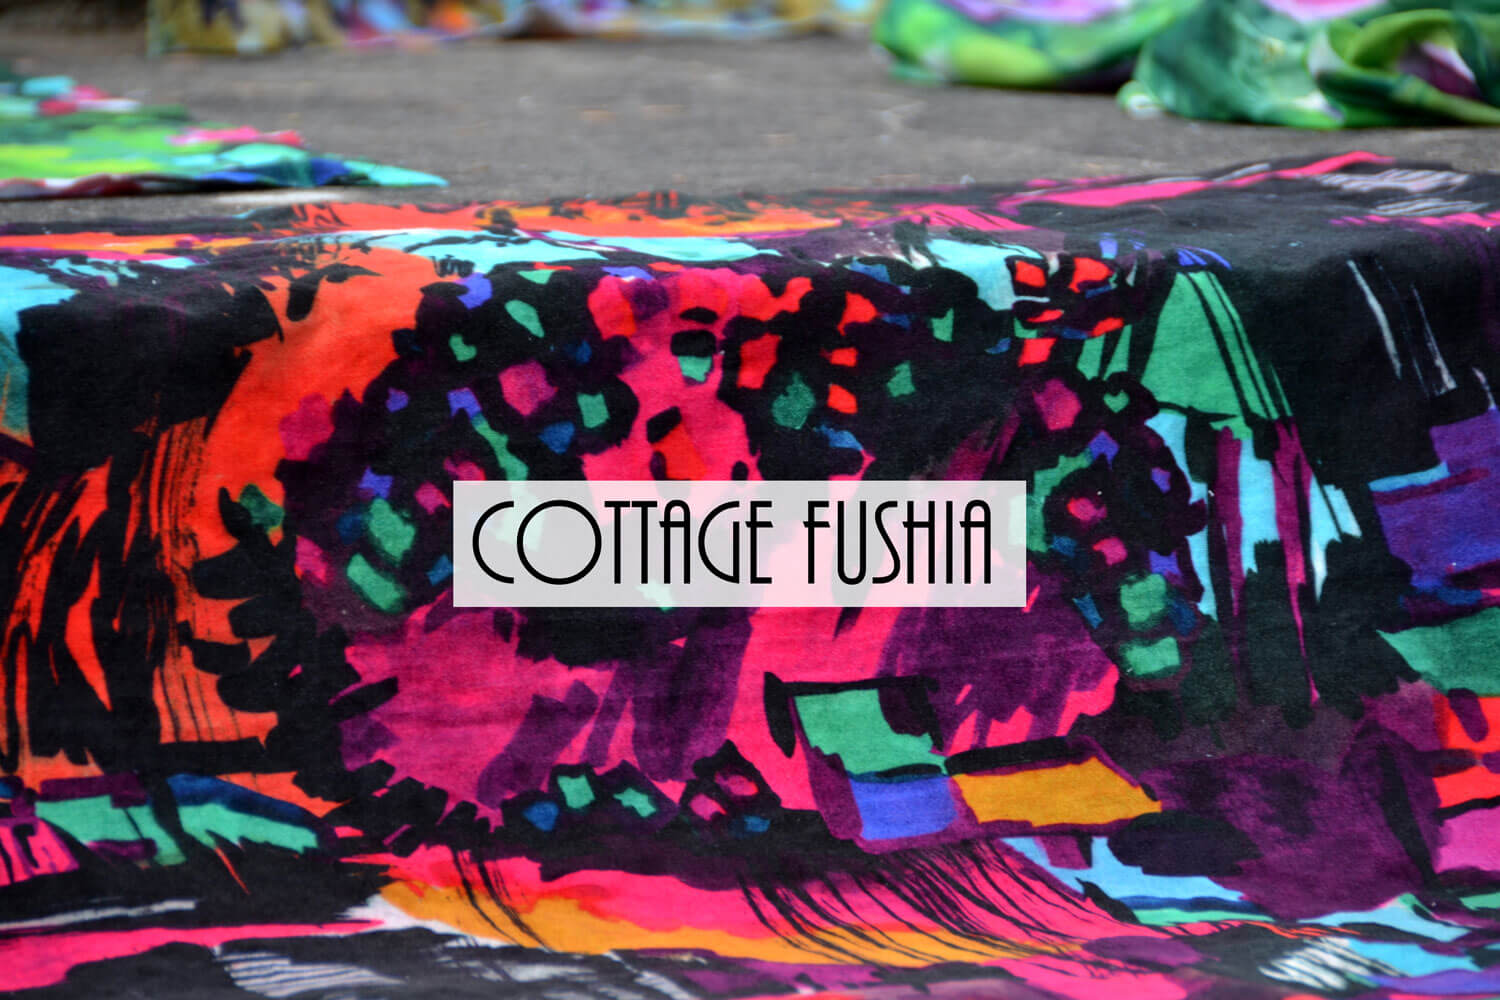 Cottage fushia Paris fashion